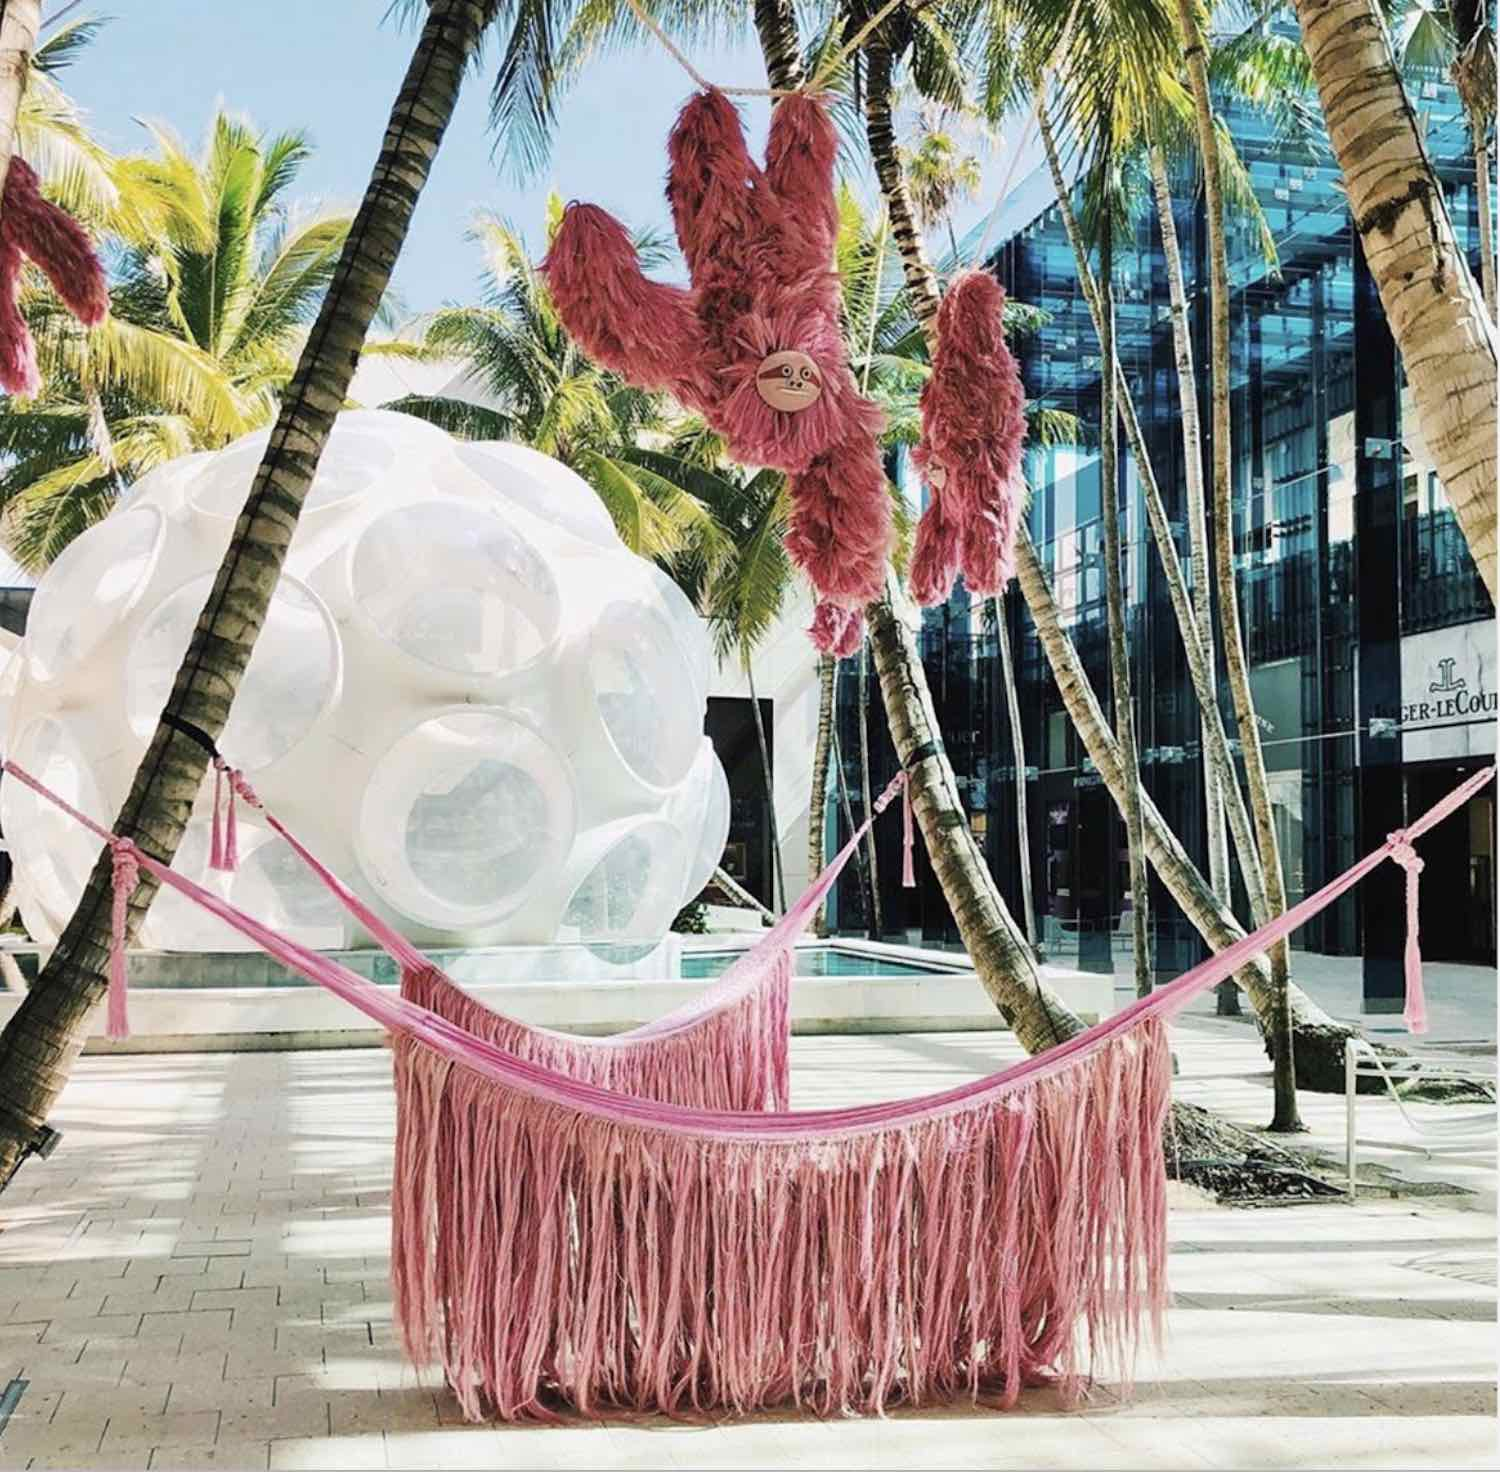 Miami Art & Design Week 2019